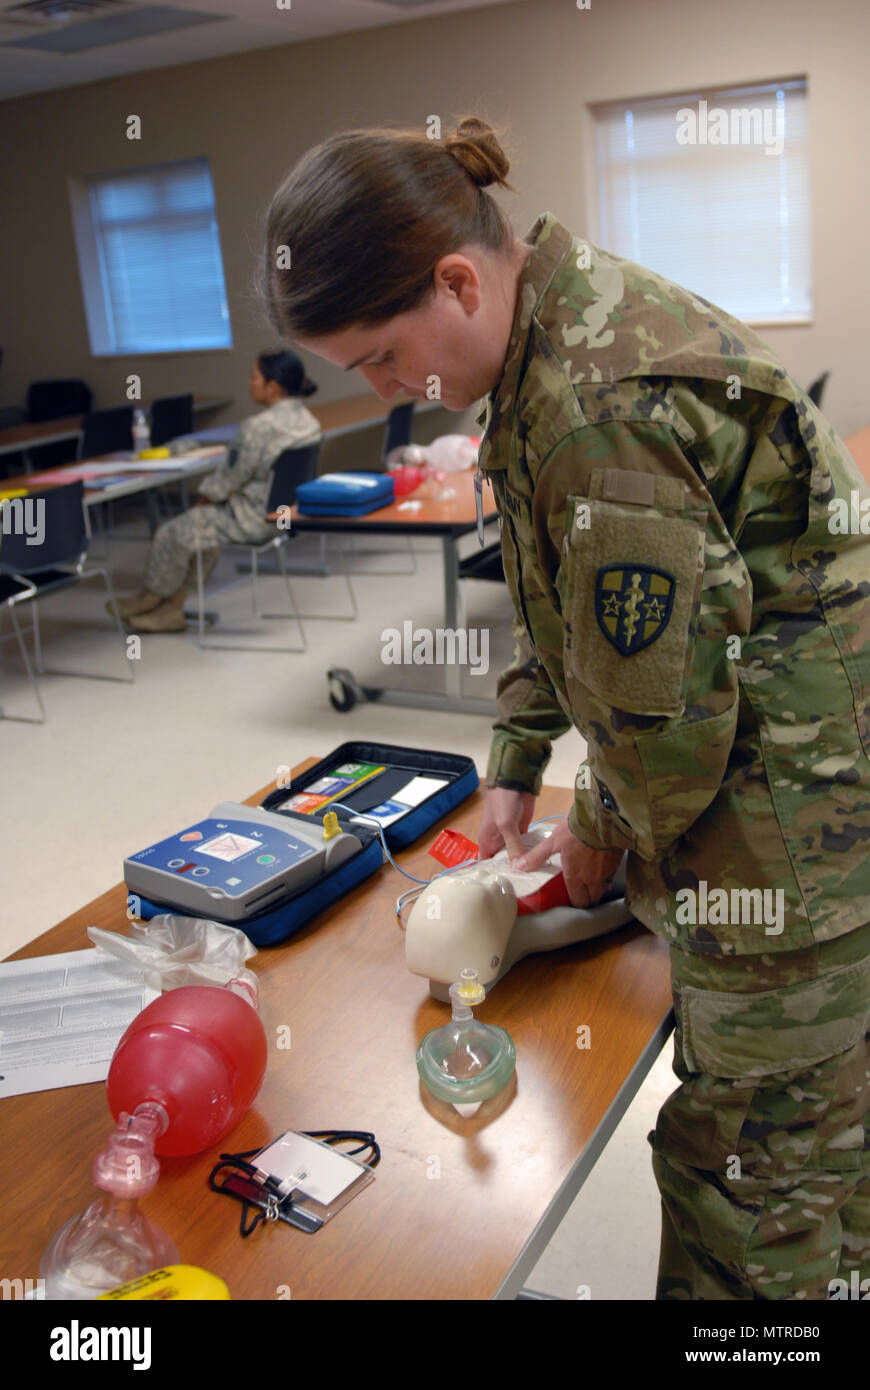 Spc Cathryn Stratton Assigned To 7453rd Medical Backfill Bn